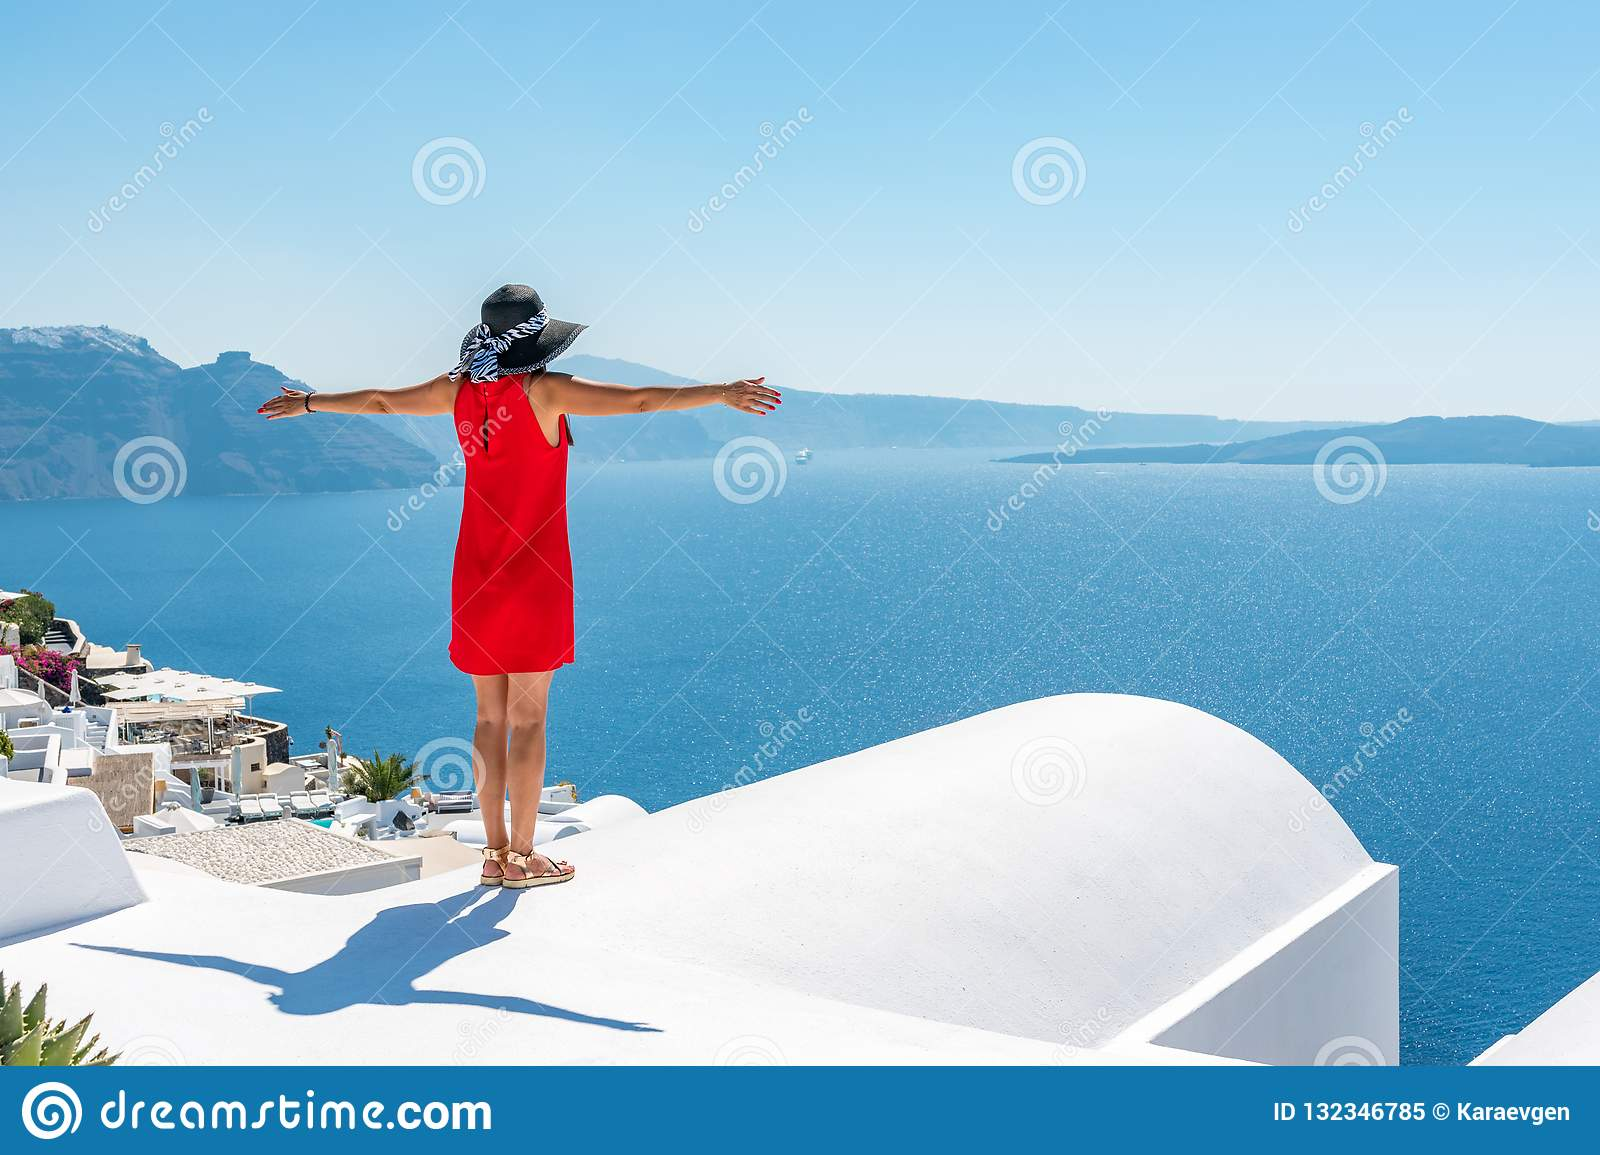 Woman in red dress on the roof enjoying view of Santorini island and Caldera in Aegean sea.